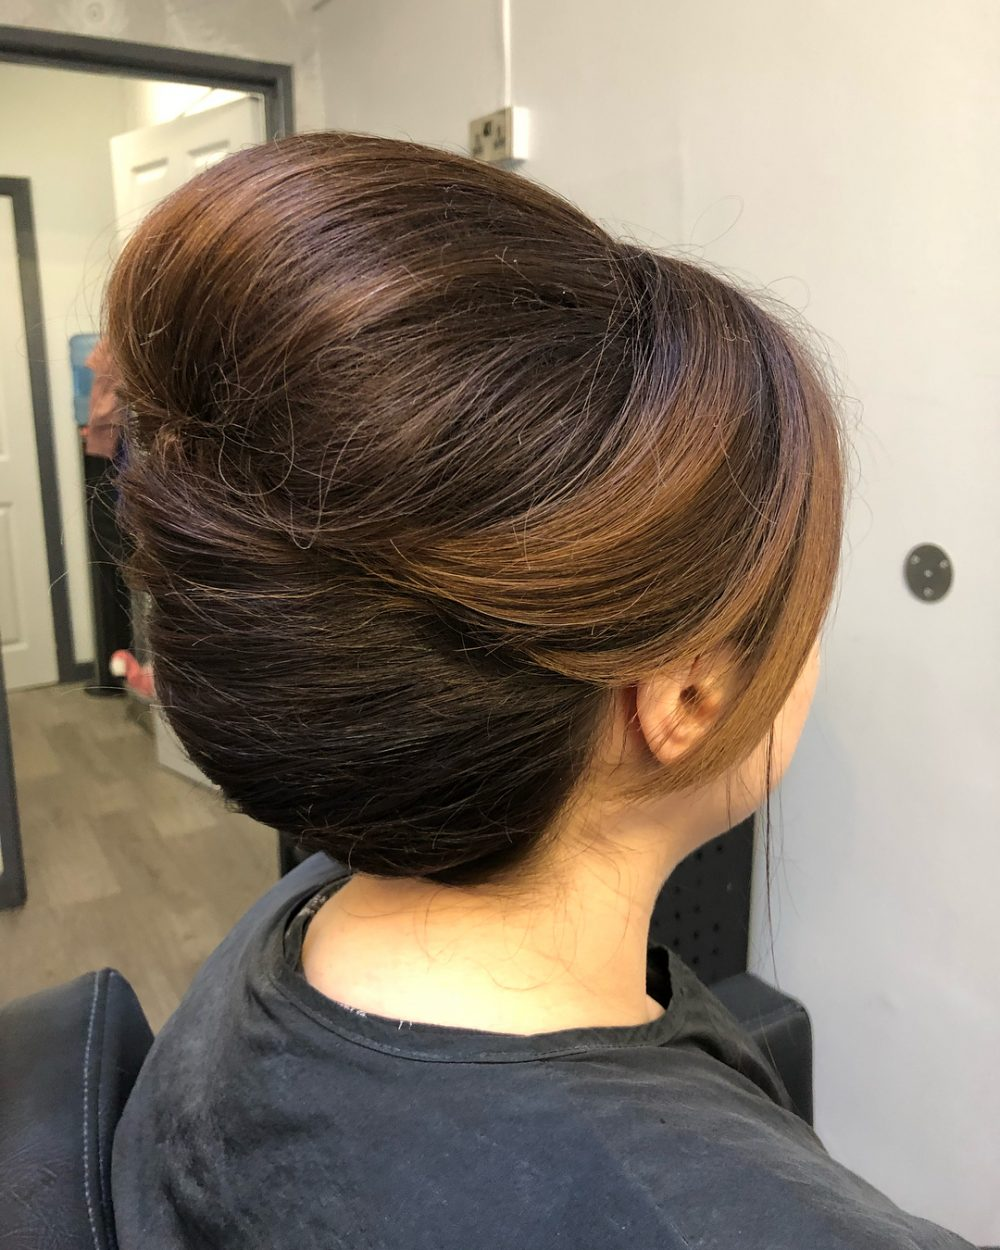 Beehive Updo hairstyle